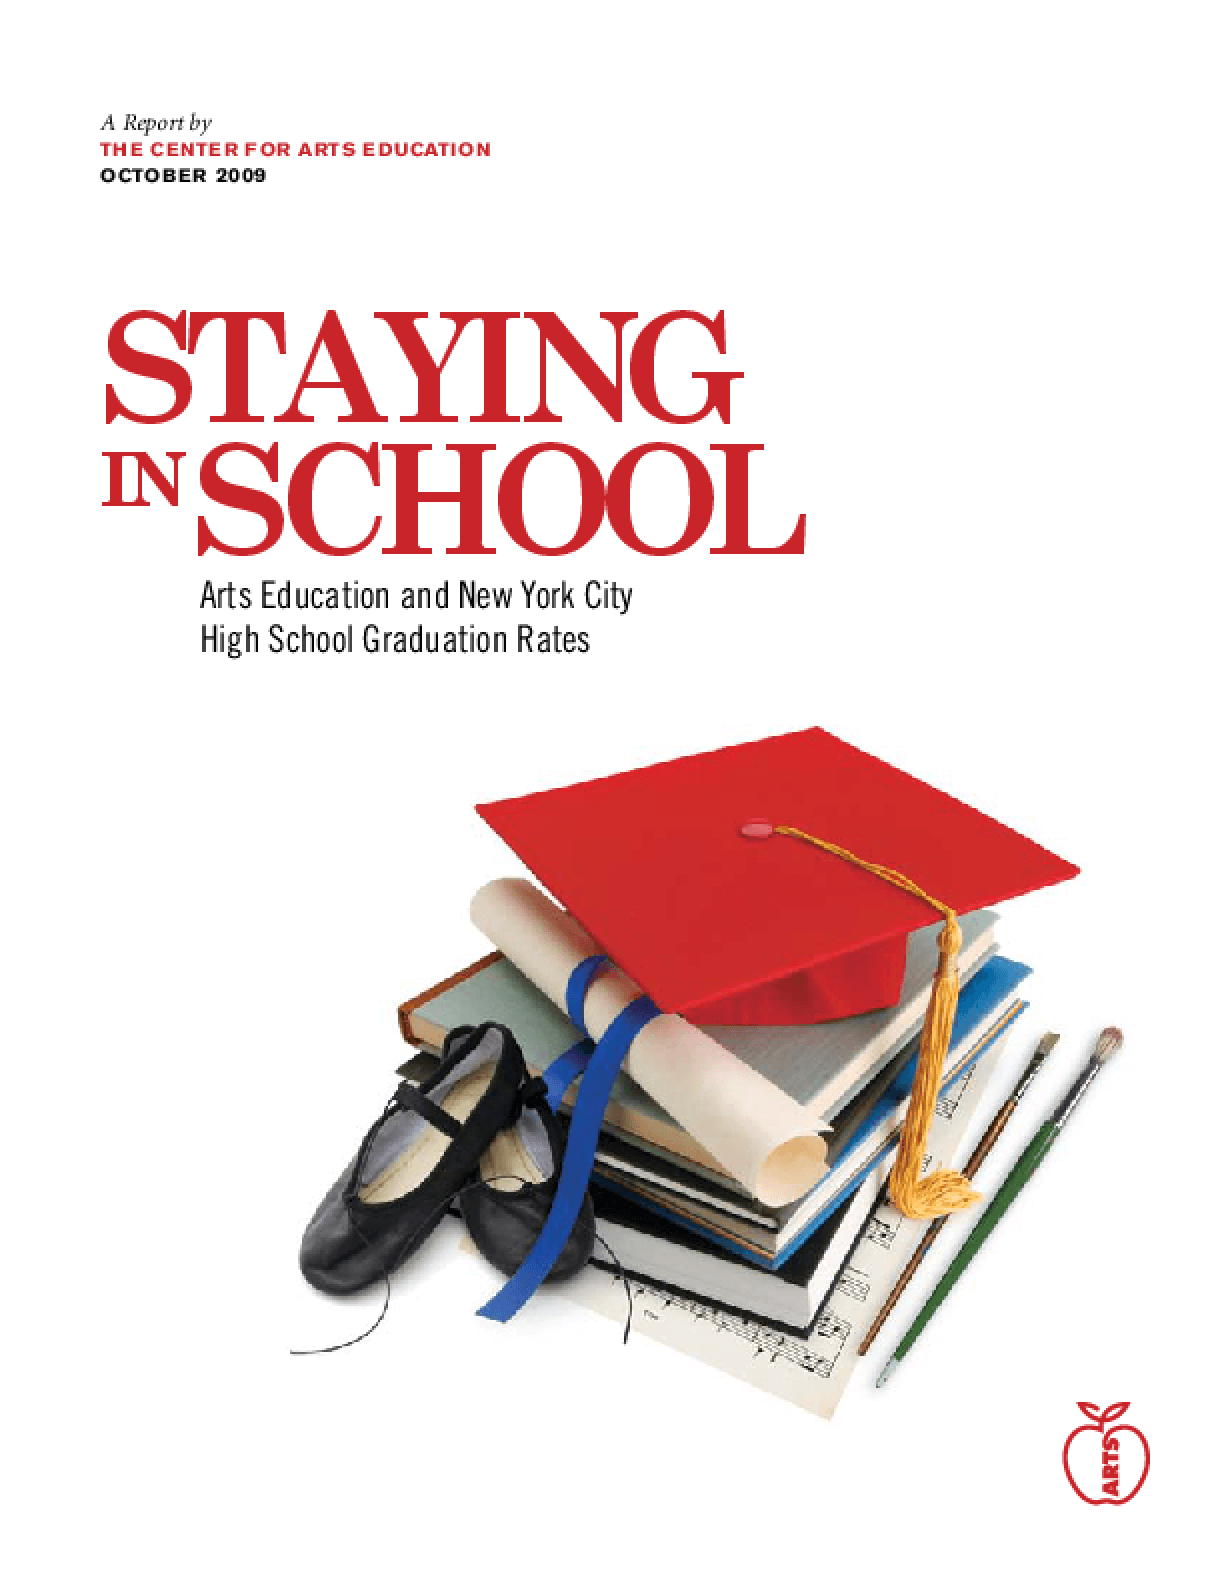 Staying in School: Arts Education and New York City High School Graduation Rates